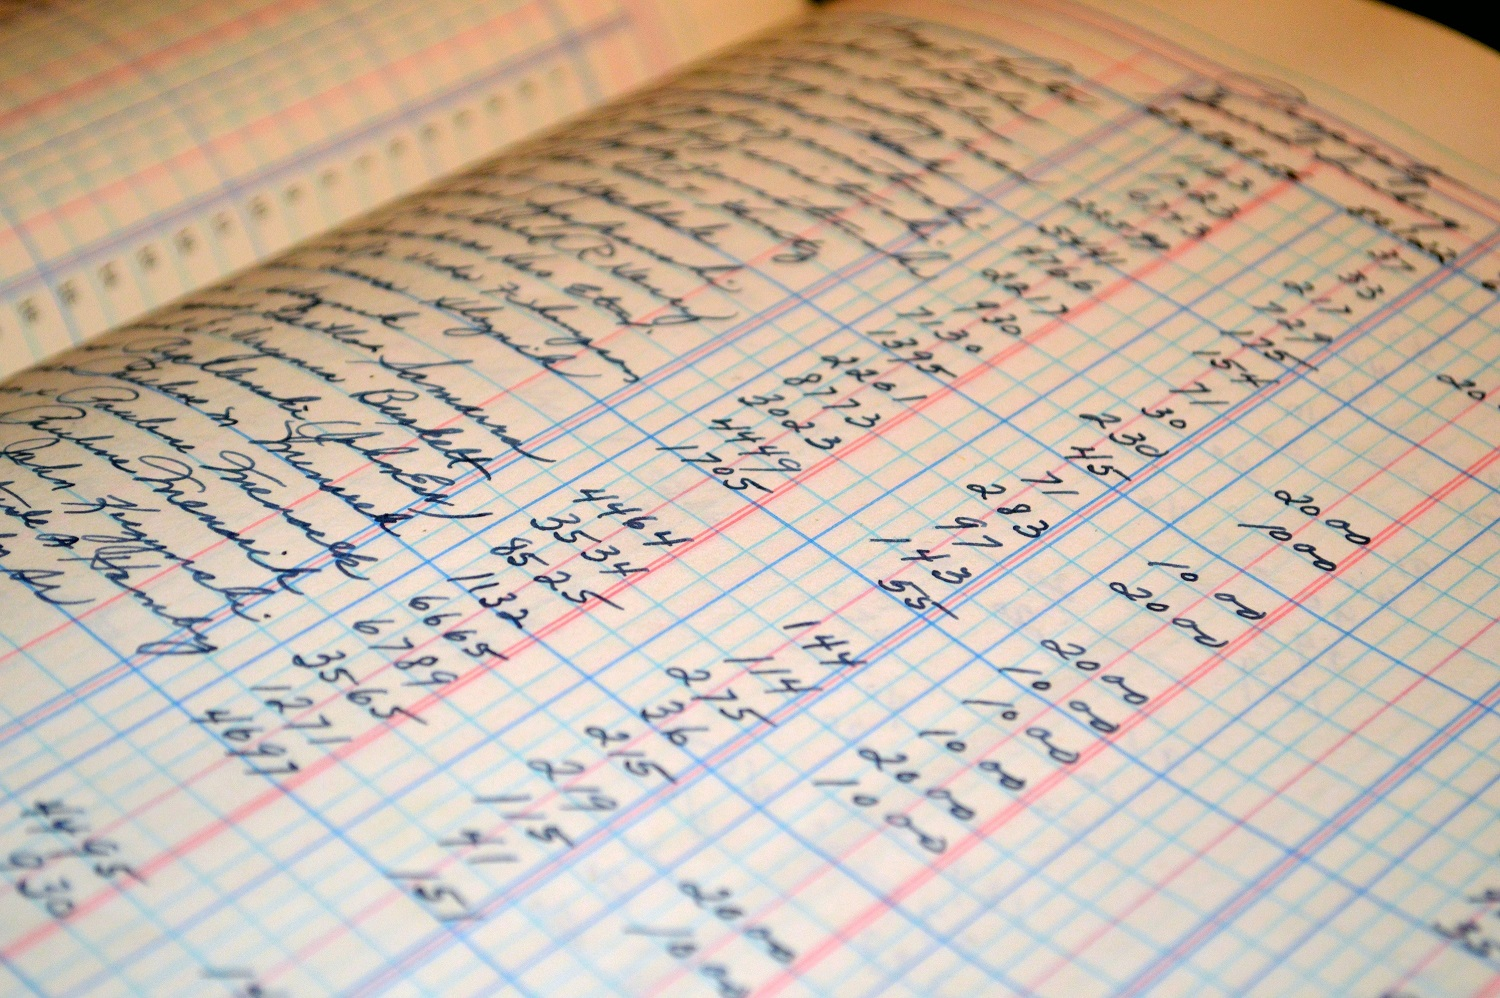 white graphing paper with numbers - organize finances for retirement